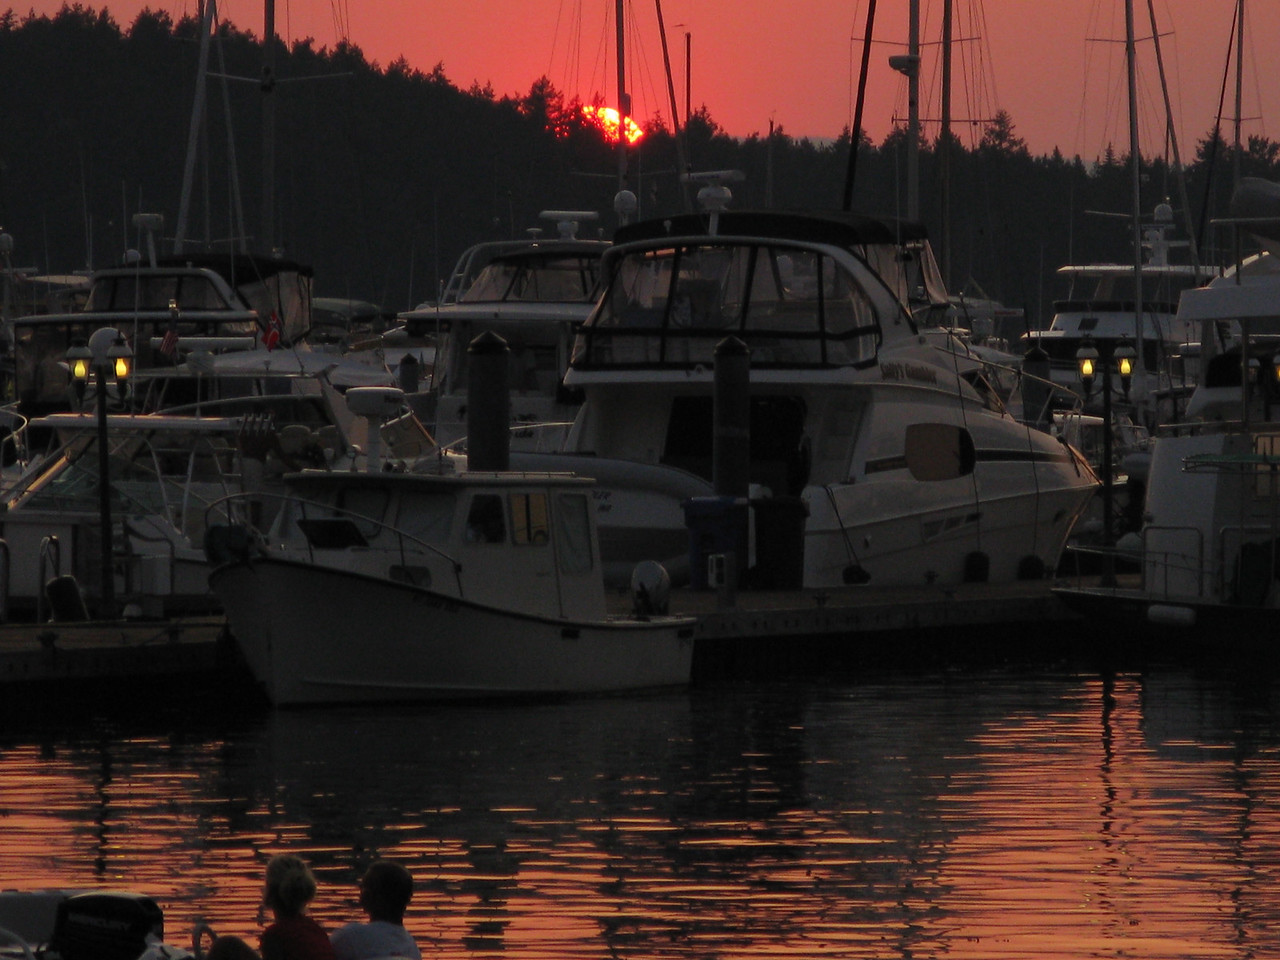 Sunset at Roche Harbor on Wednesday night.